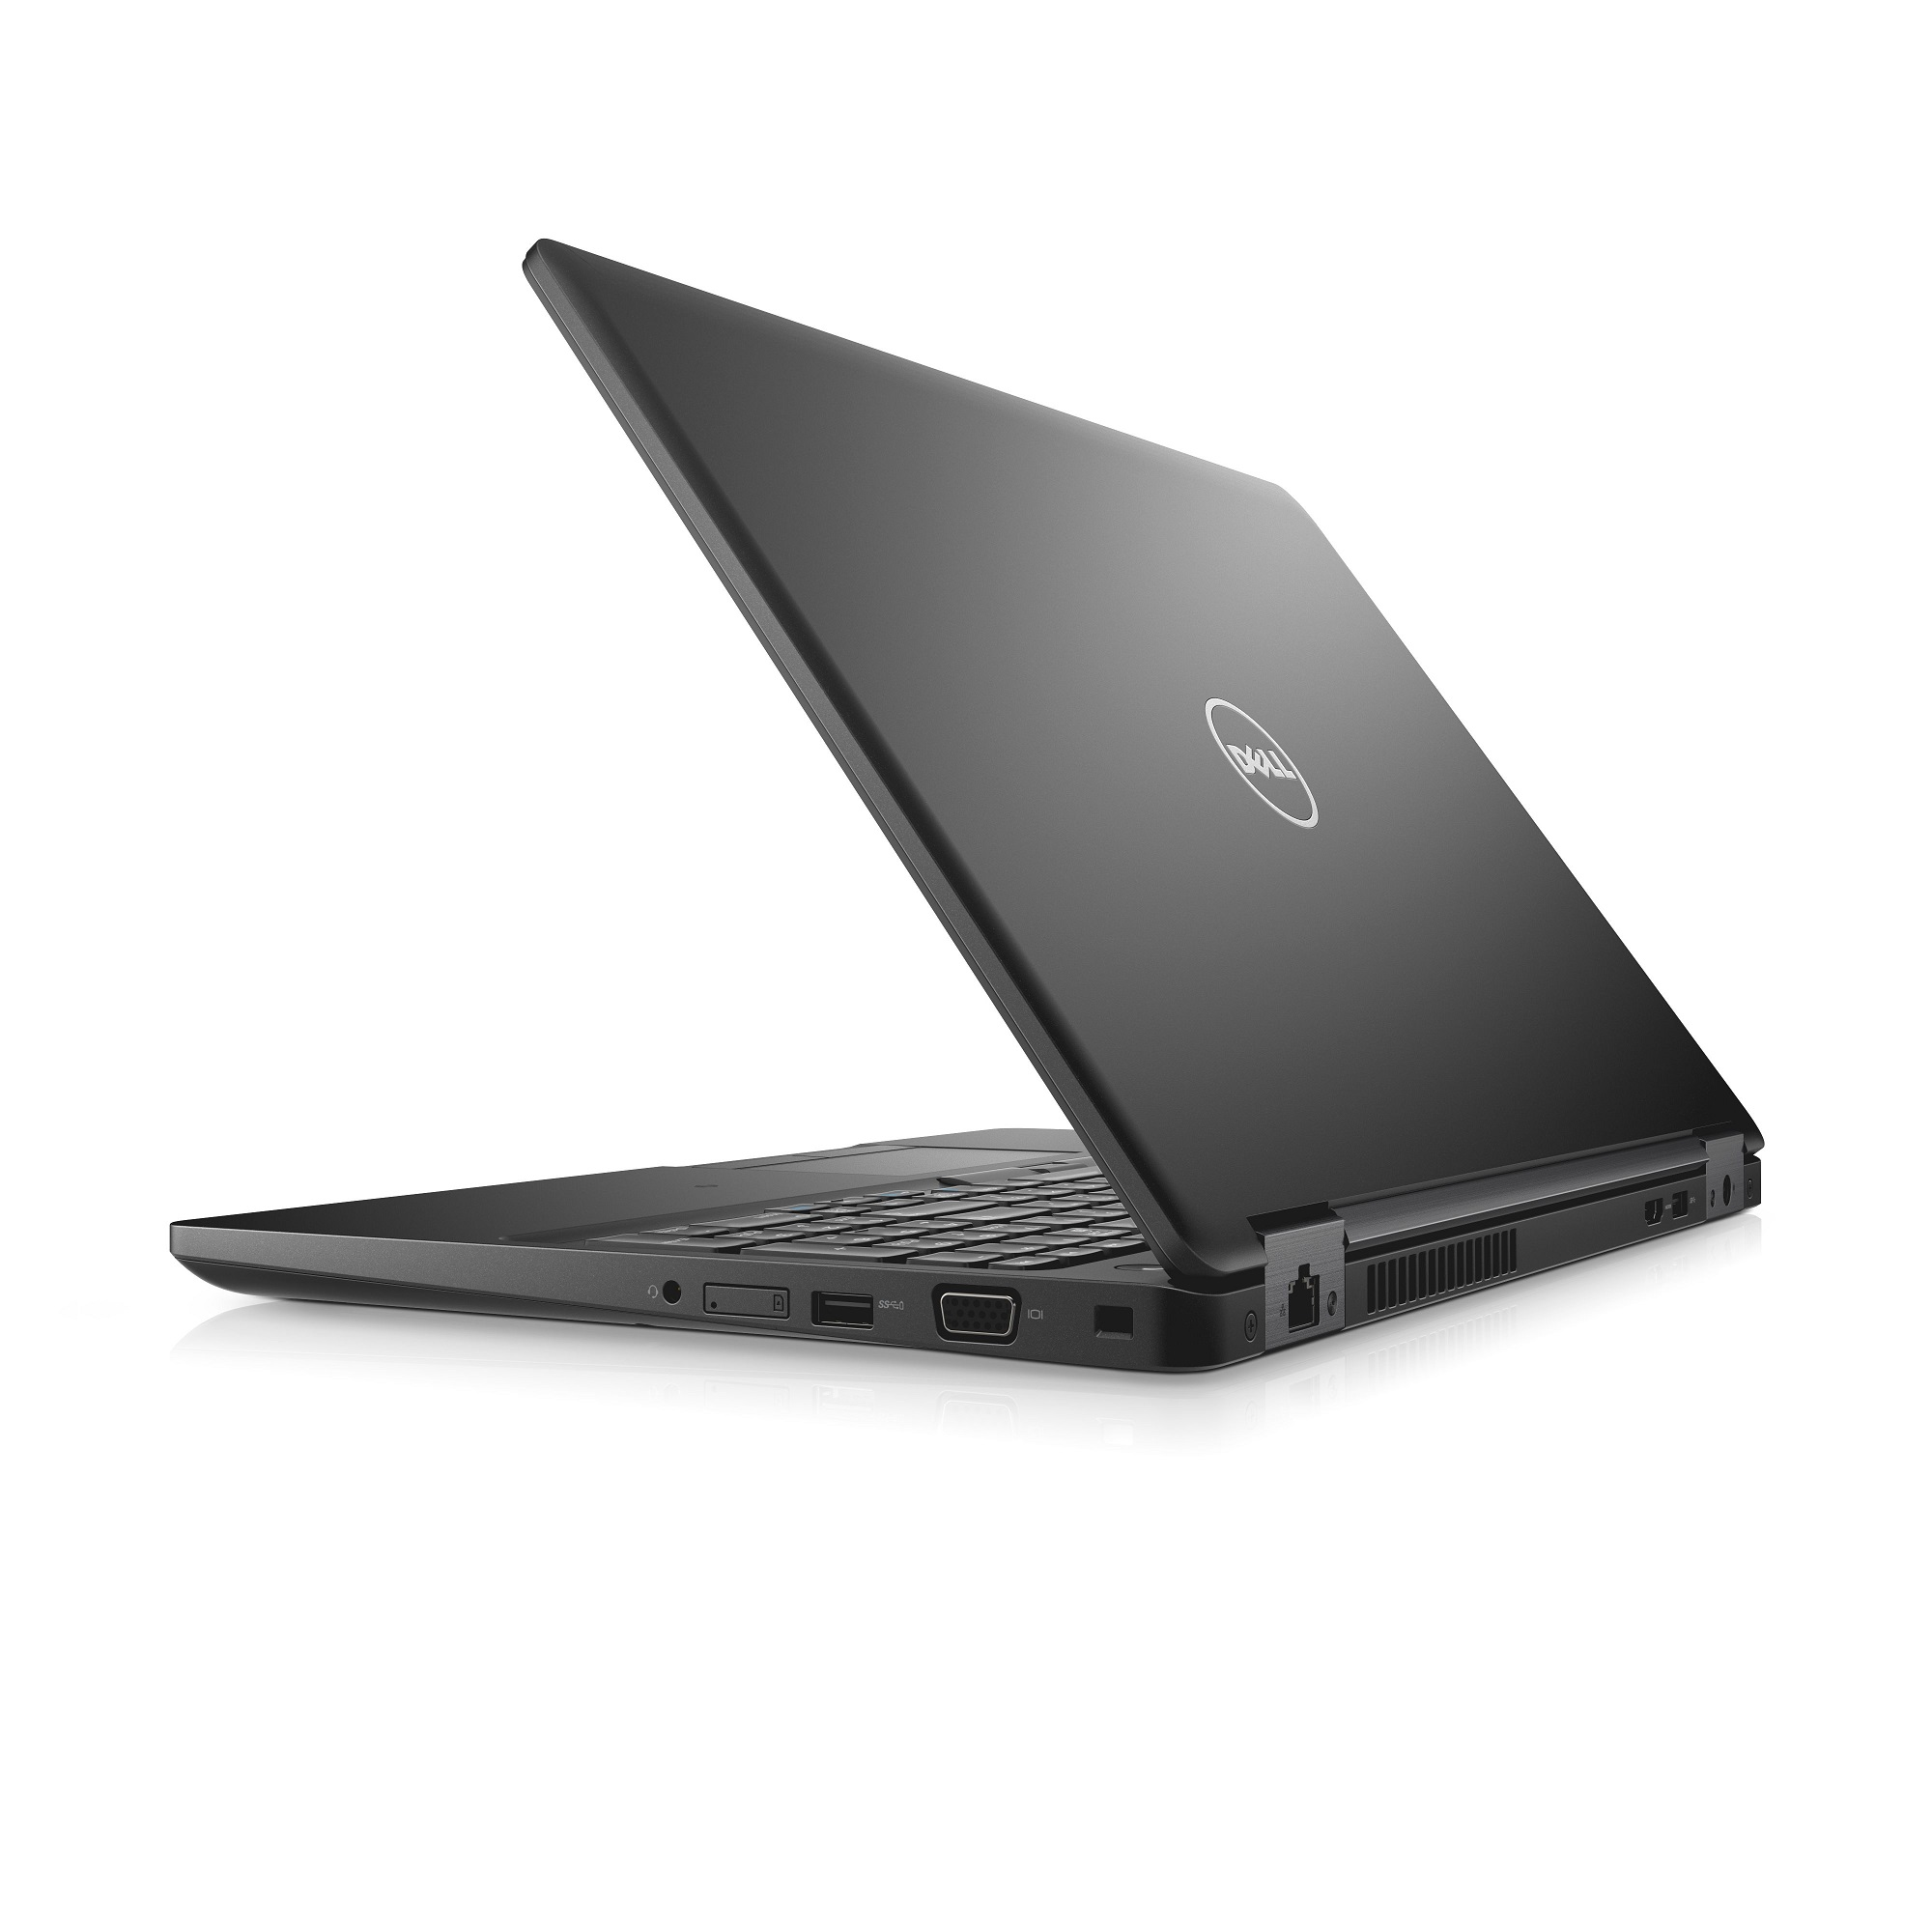 "DELL Latitude 5580/i7-7600U/16GB/512GB SSD/Intel HD 620/15.6"" FHD/Win 10Pro/Black"